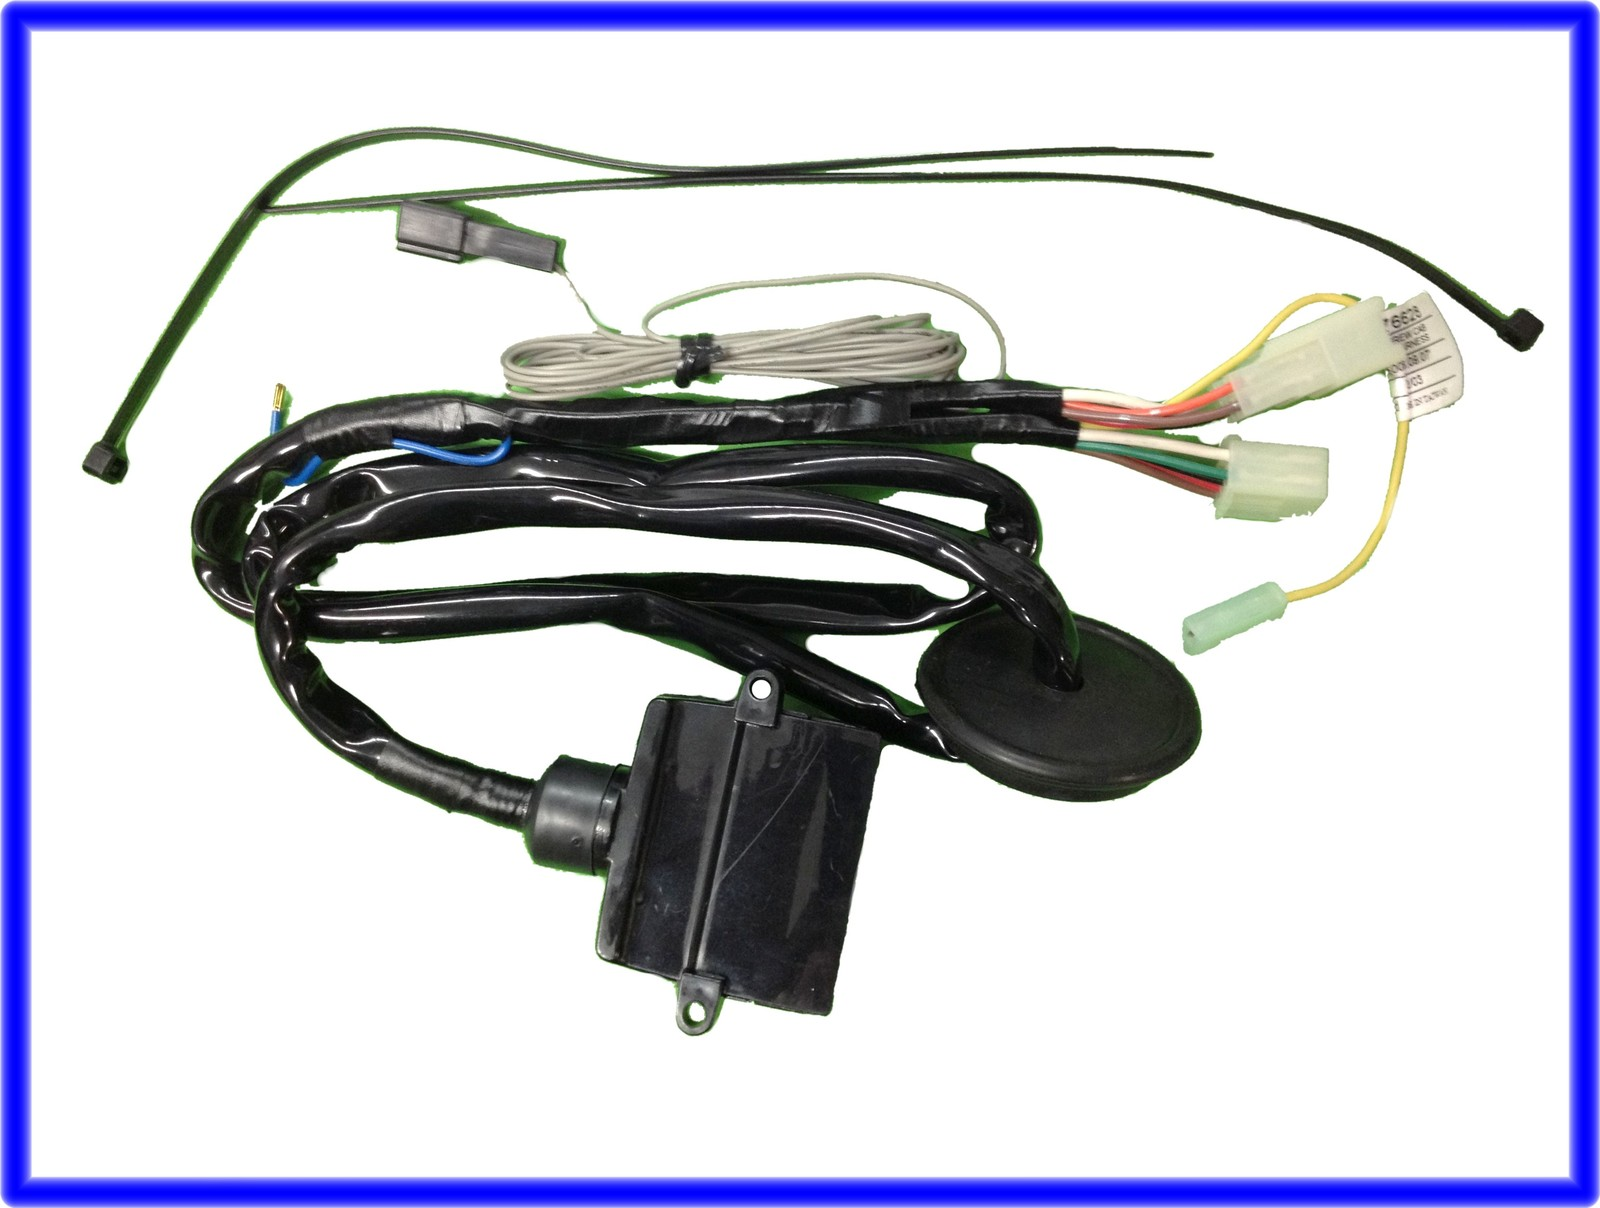 Ve Commodore Tow Bar Wiring Harness Diagram 43 Vy Trailer 92176628 Towbar Vu Vz Ute And Crewman 7 Pin Plug